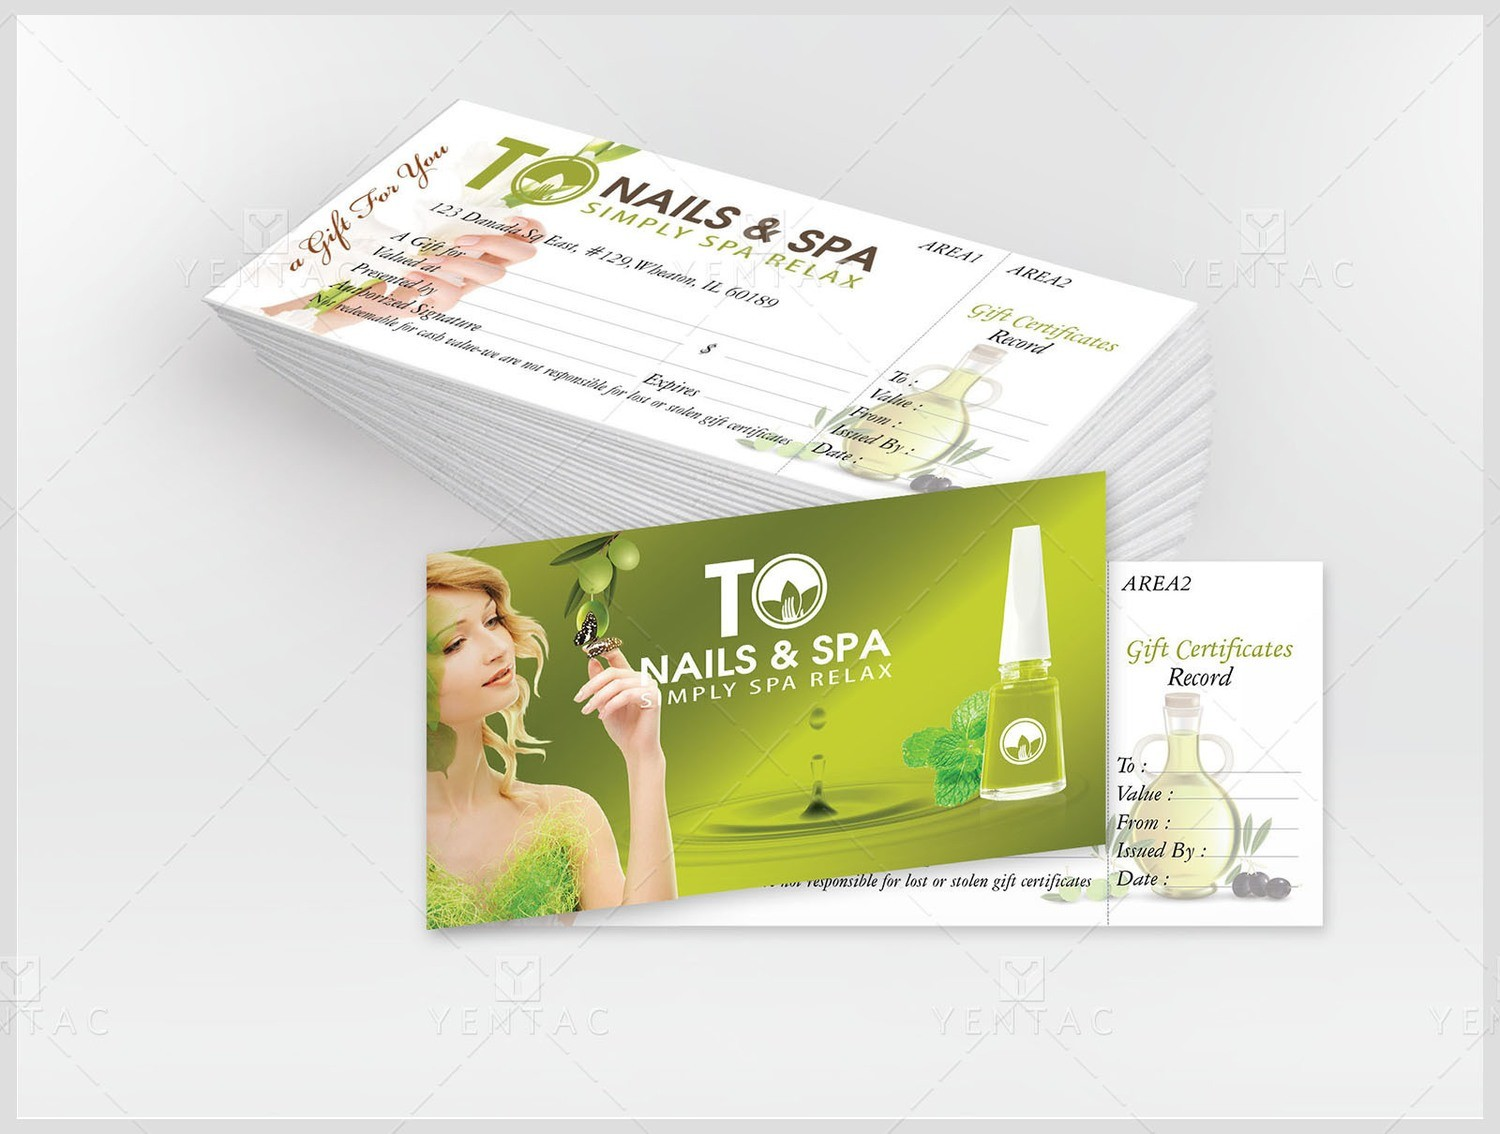 11 - Gift Certificate Deluxe Custom Design  & Printing - TO Brand Franchise  3011 Size 8.5x3.5 Inches